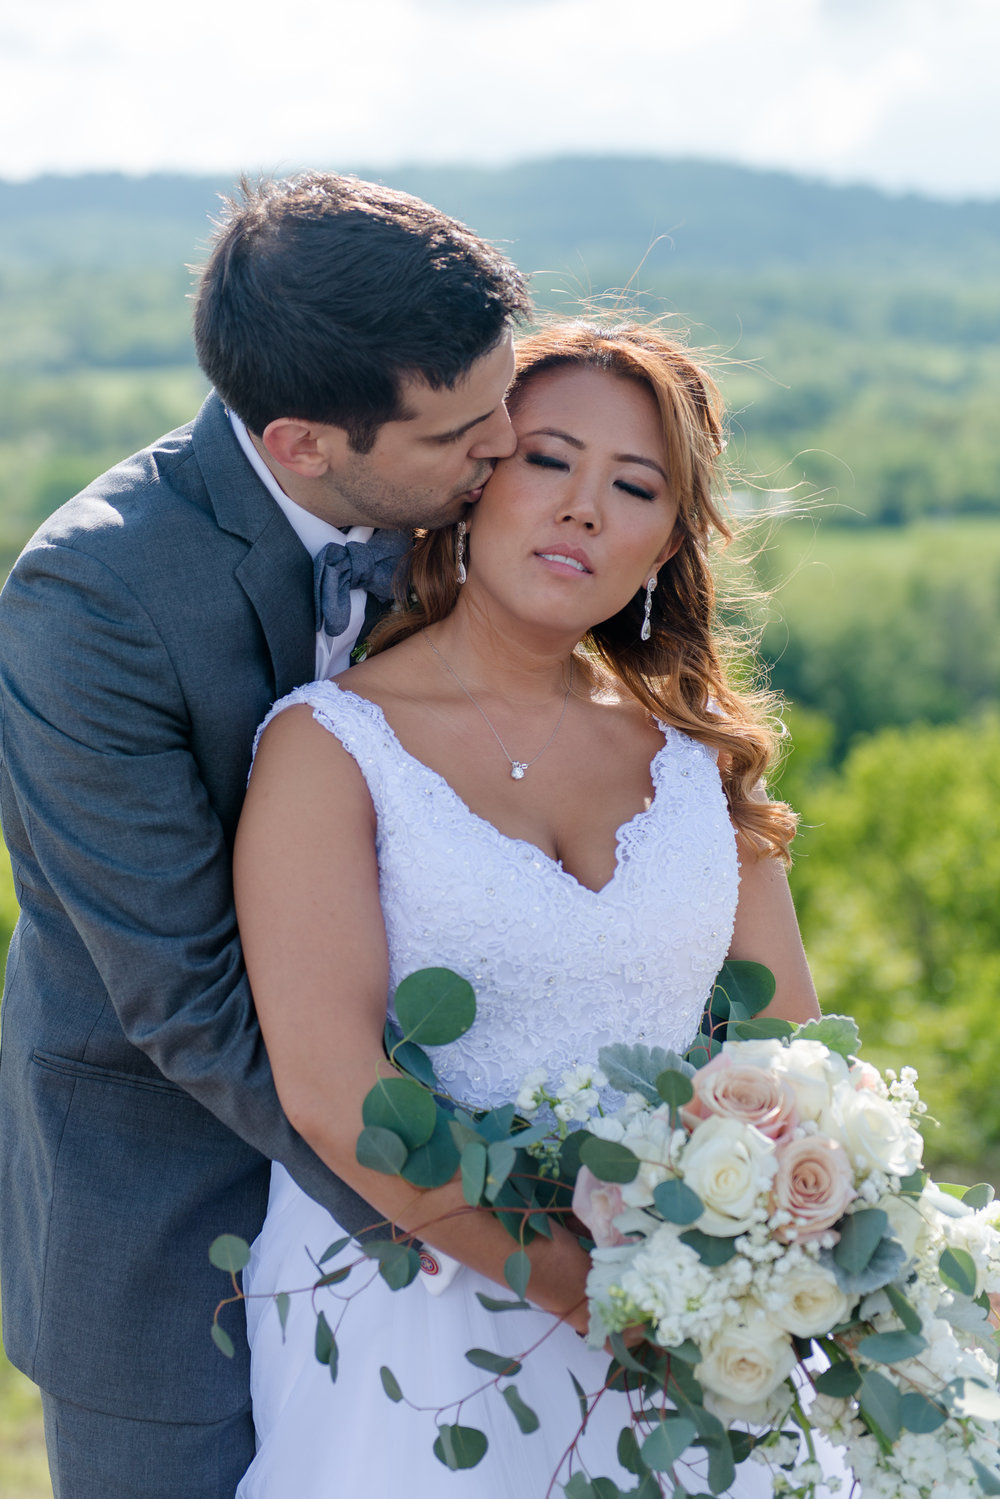 A groom embraces his bride and kisses her cheek with Blue Ridge Mountains in the background at Blue Valley Vineyard and Winery in Delaplane, Virginia